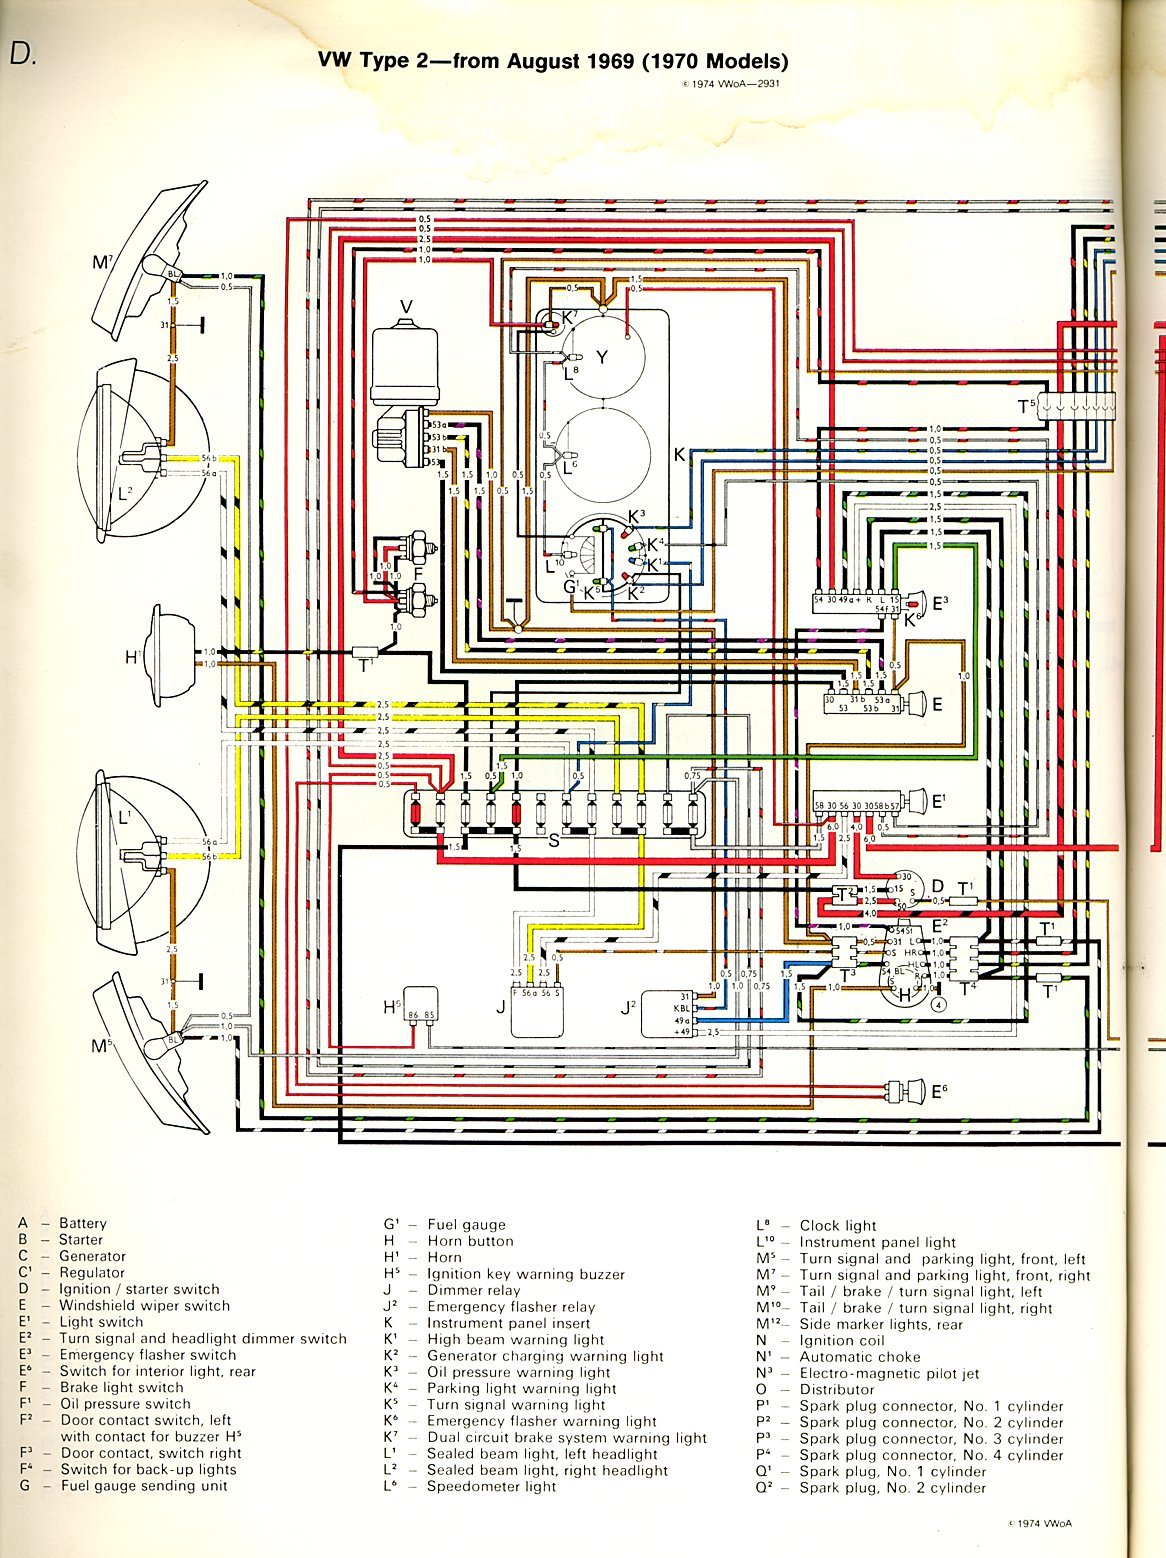 76 Type 2 Wiring Diagram 6 0 Icp Pigtail Wiring Diagram For Wiring Diagram Schematics